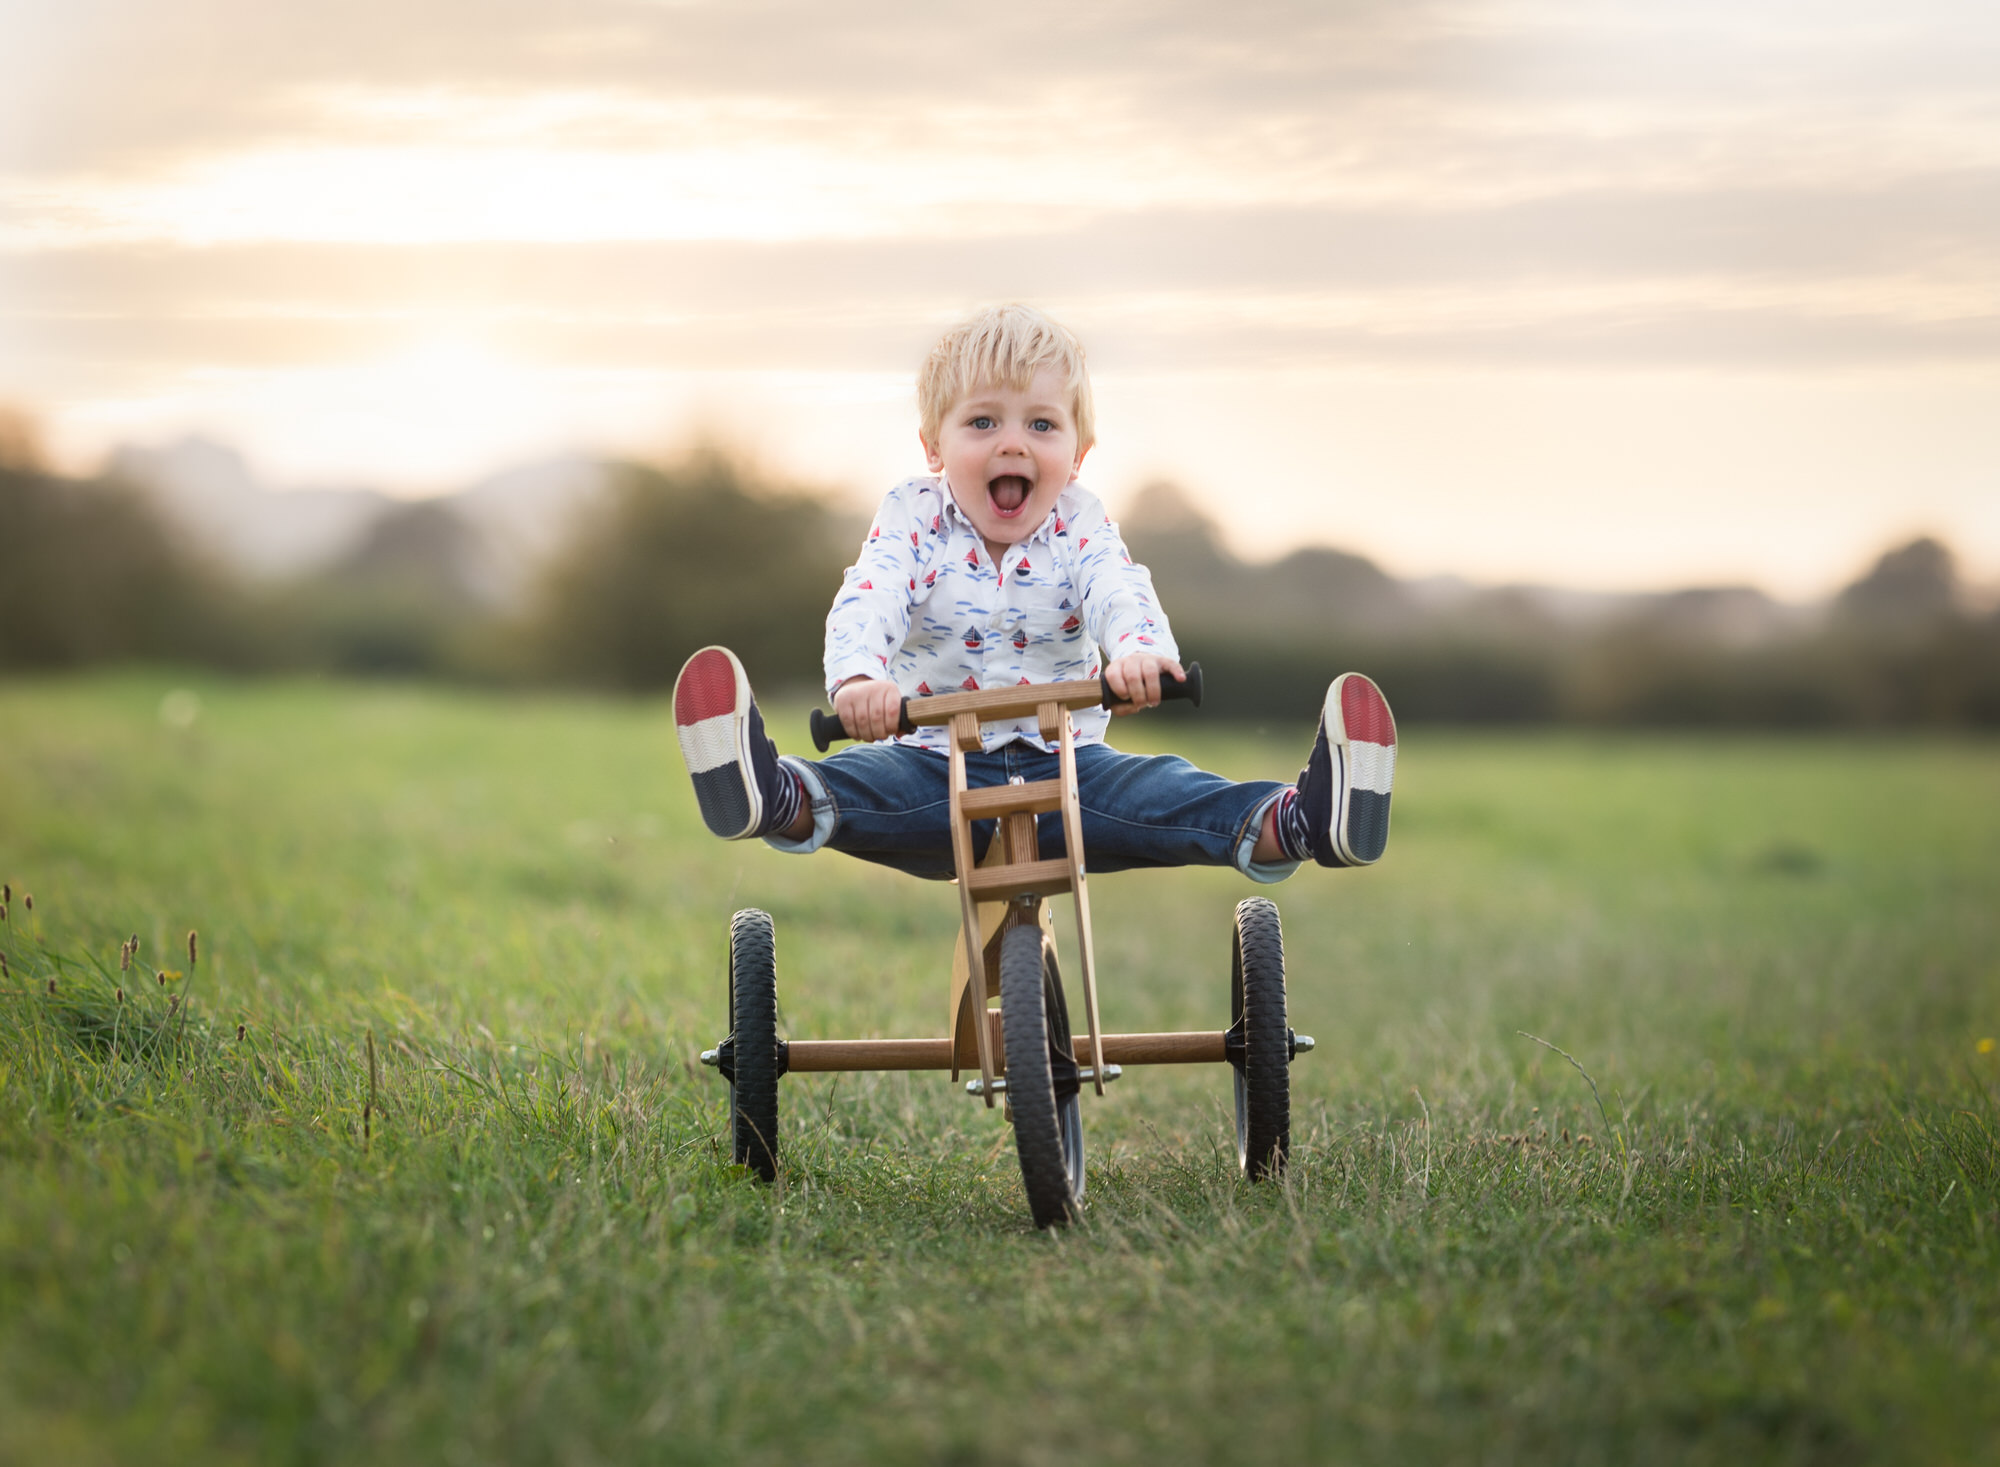 Toddler on a bike with legs up on photoshoot in Oxford